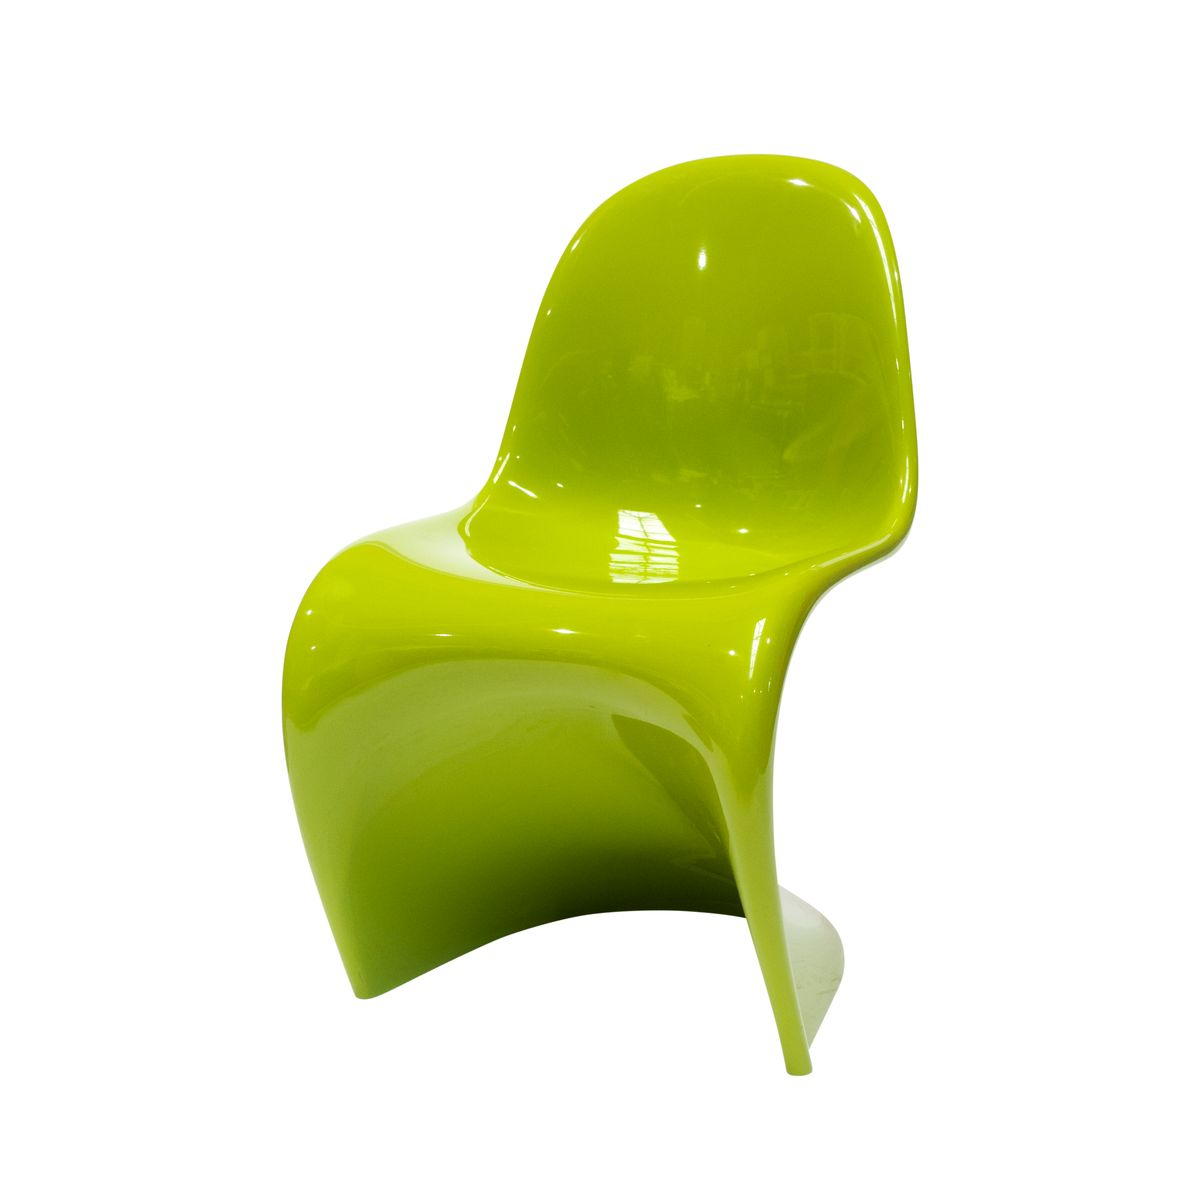 Panton Chair the panton chair in chartreuse by verner panton for vitra 2006 for